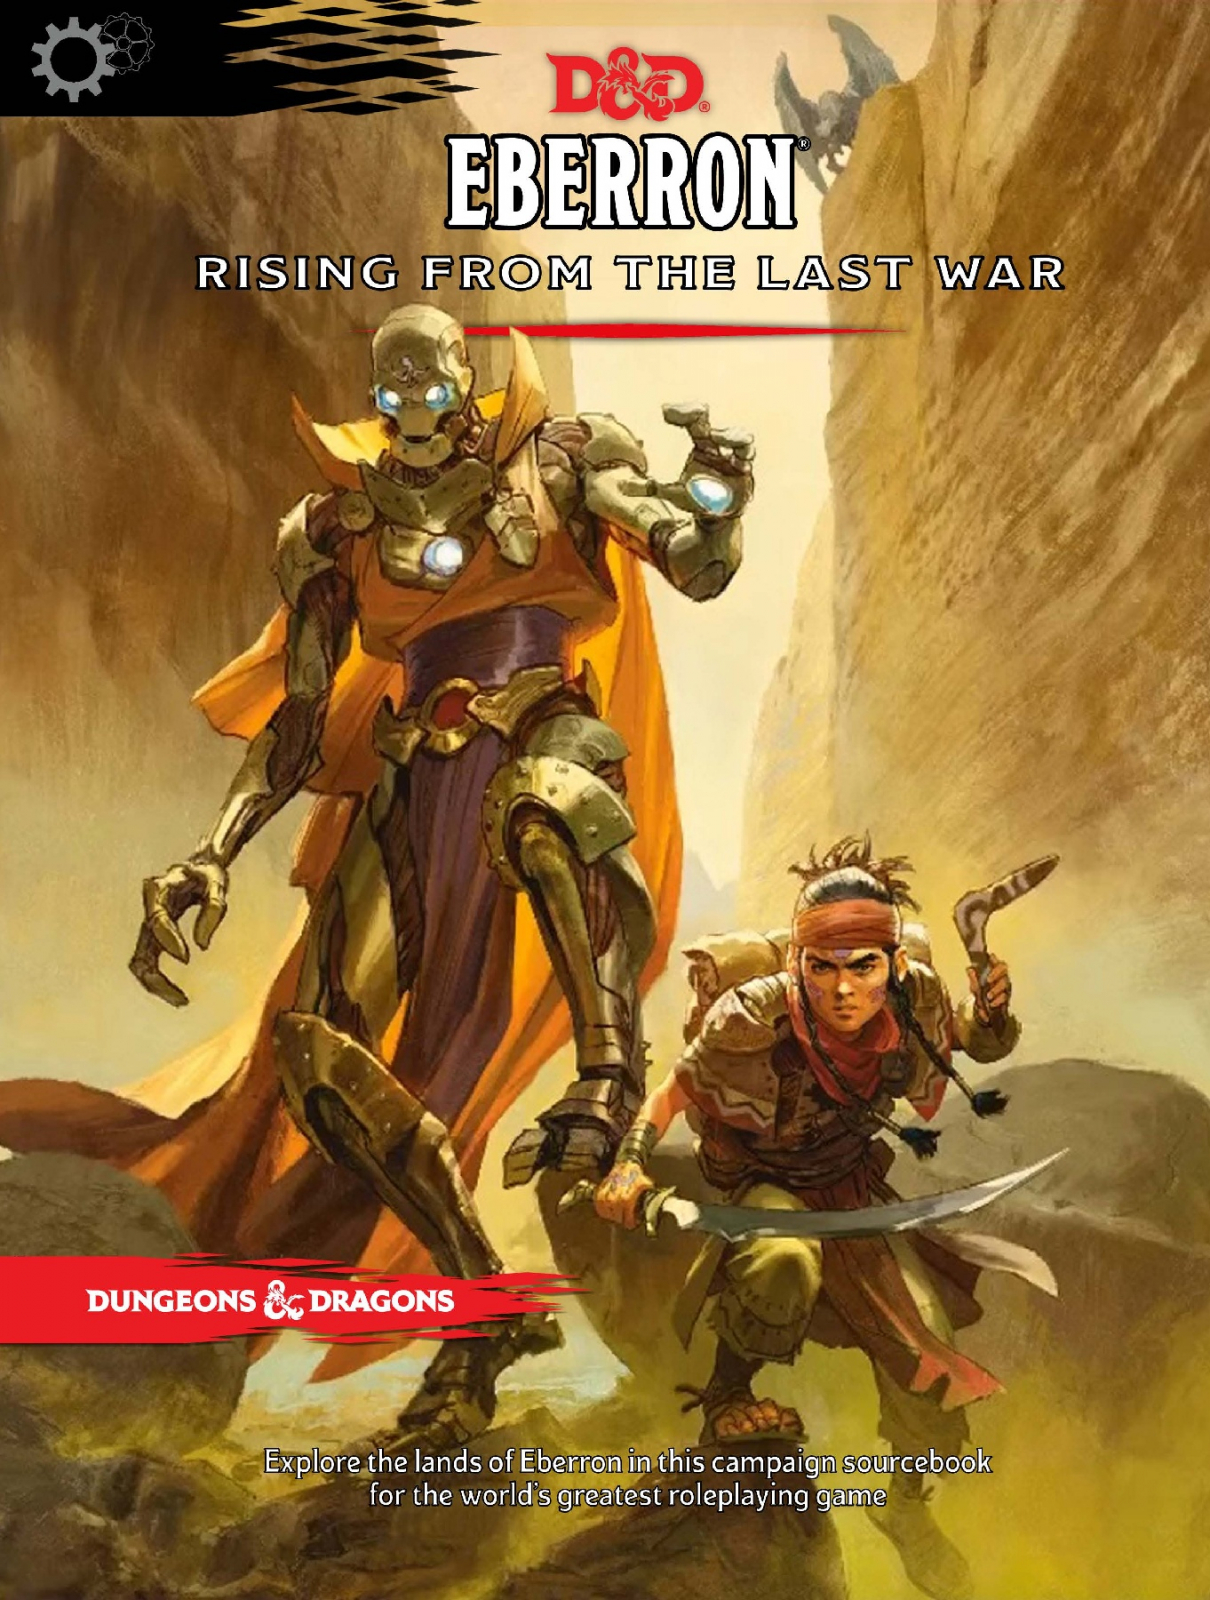 Eberron: Rising from the Last War Source Book